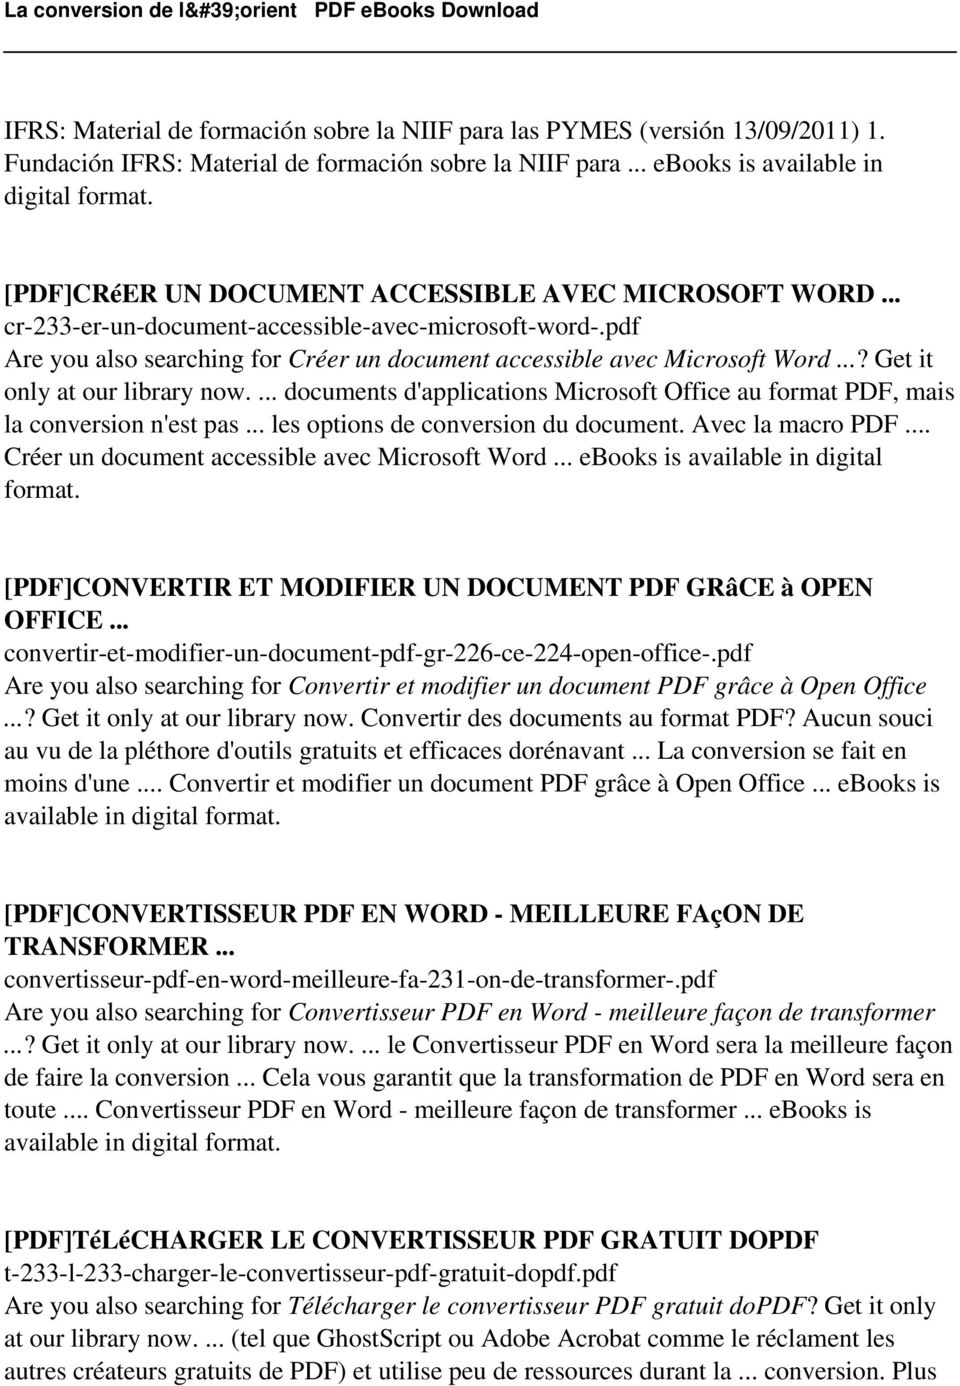 ..? Get it only at our library now.... documents d'applications Microsoft Office au format PDF, mais la conversion n'est pas... les options de conversion du document. Avec la macro PDF.